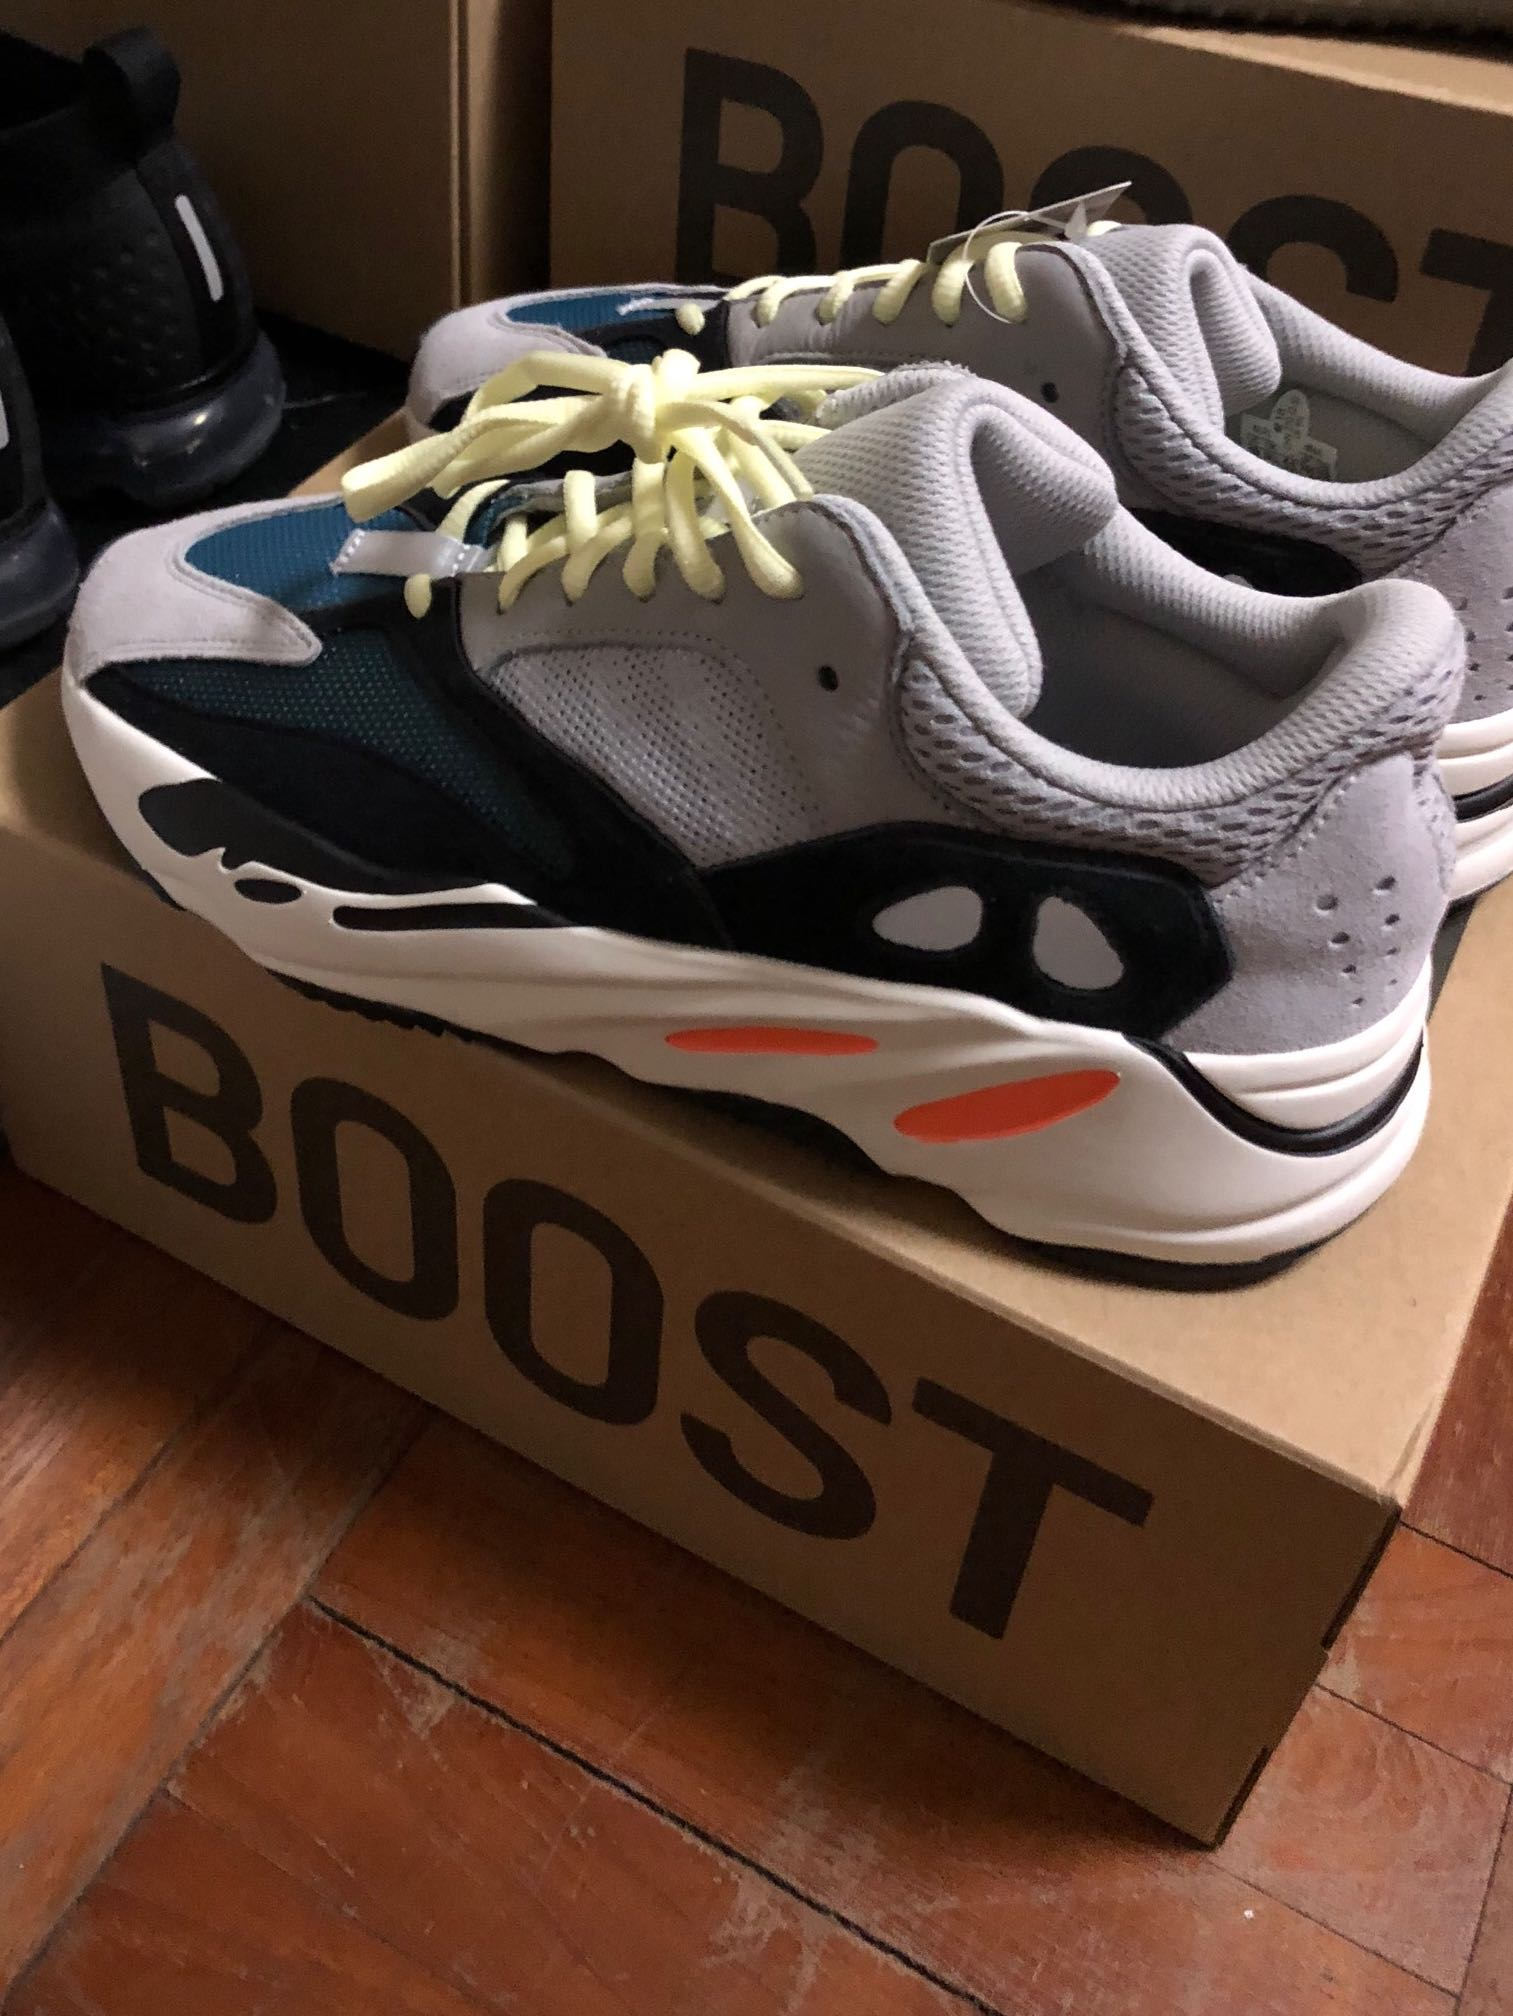 cee6a9254a678 Yeezy 700 wave runner us 5